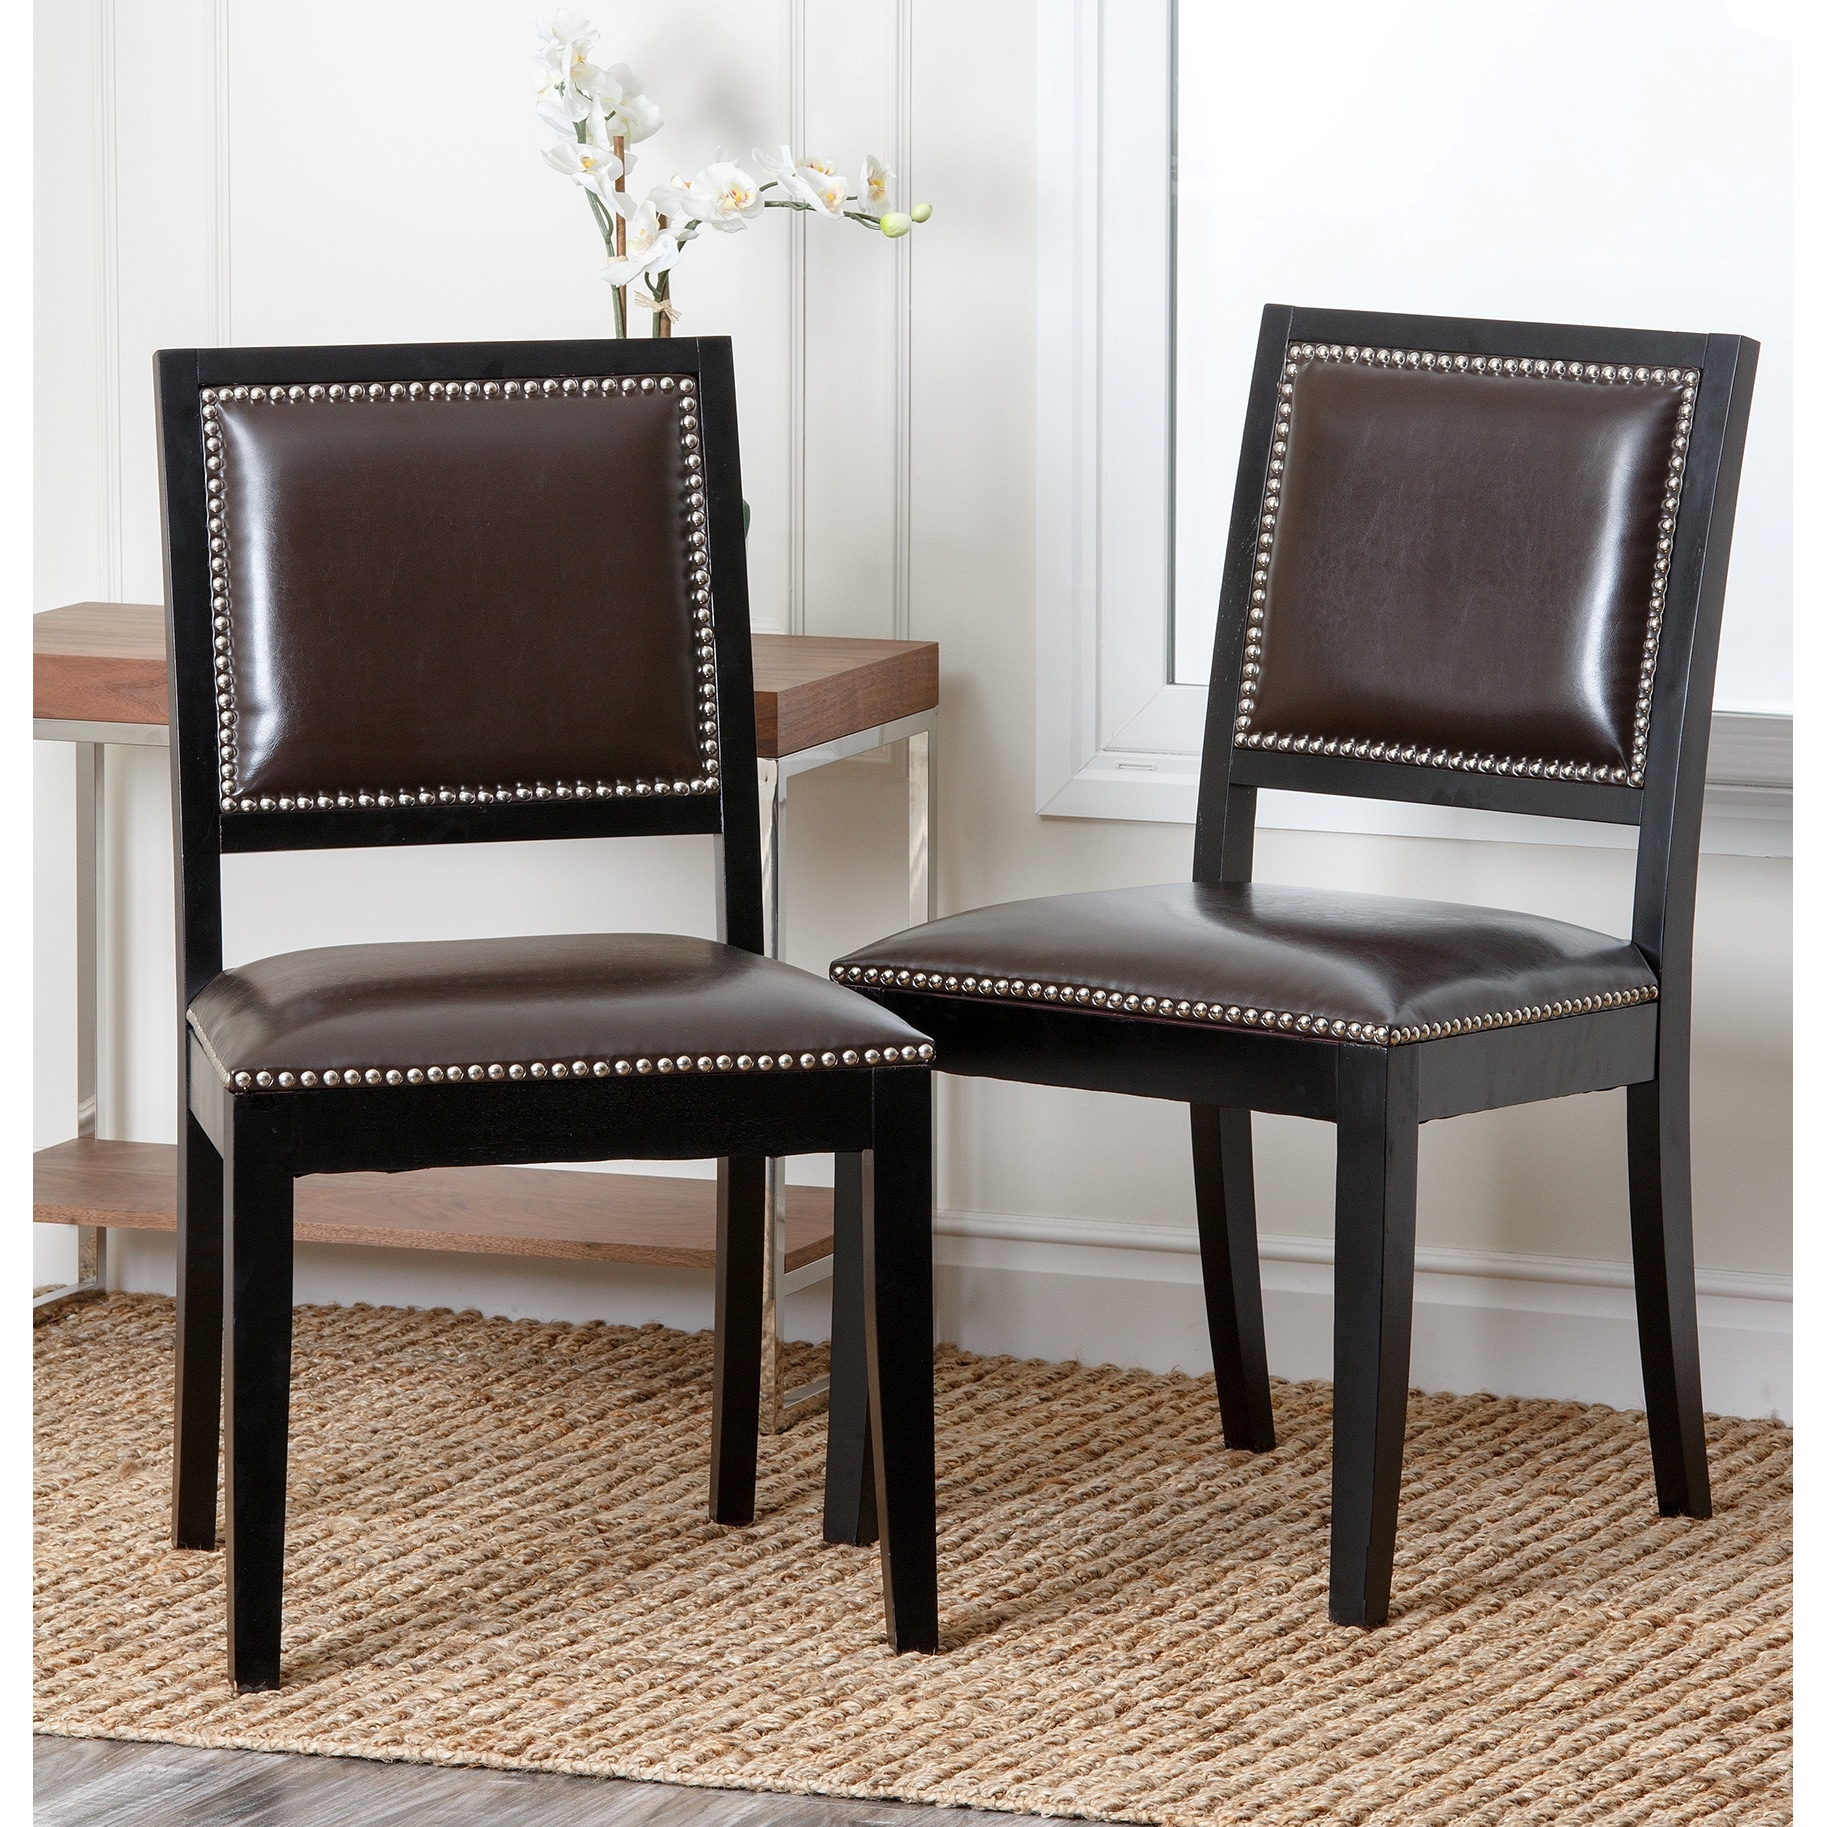 Enjoyable Abbyson Living Monaco Brown Bicast Leather Dining Chairs Ibusinesslaw Wood Chair Design Ideas Ibusinesslaworg